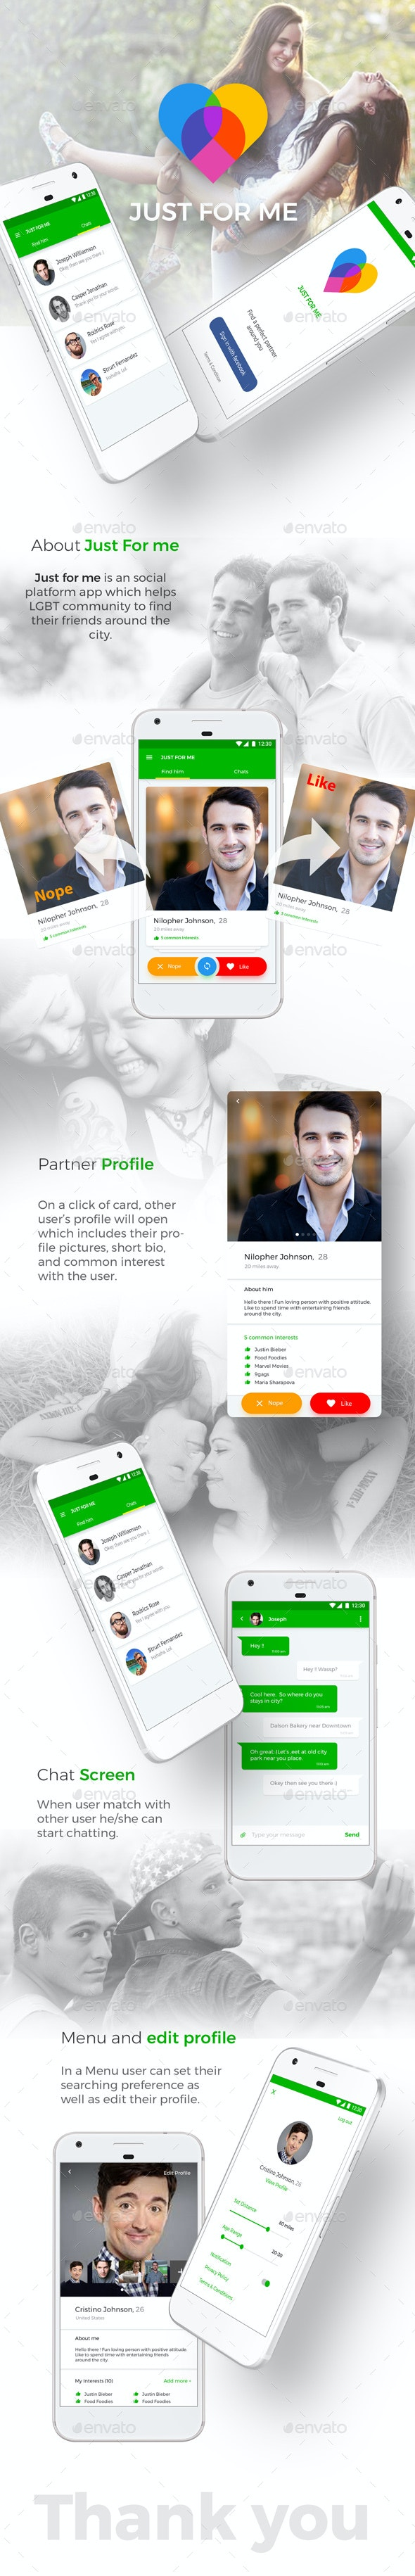 Dating App UI Kit like Tinder | Just For Me for Android + iOS